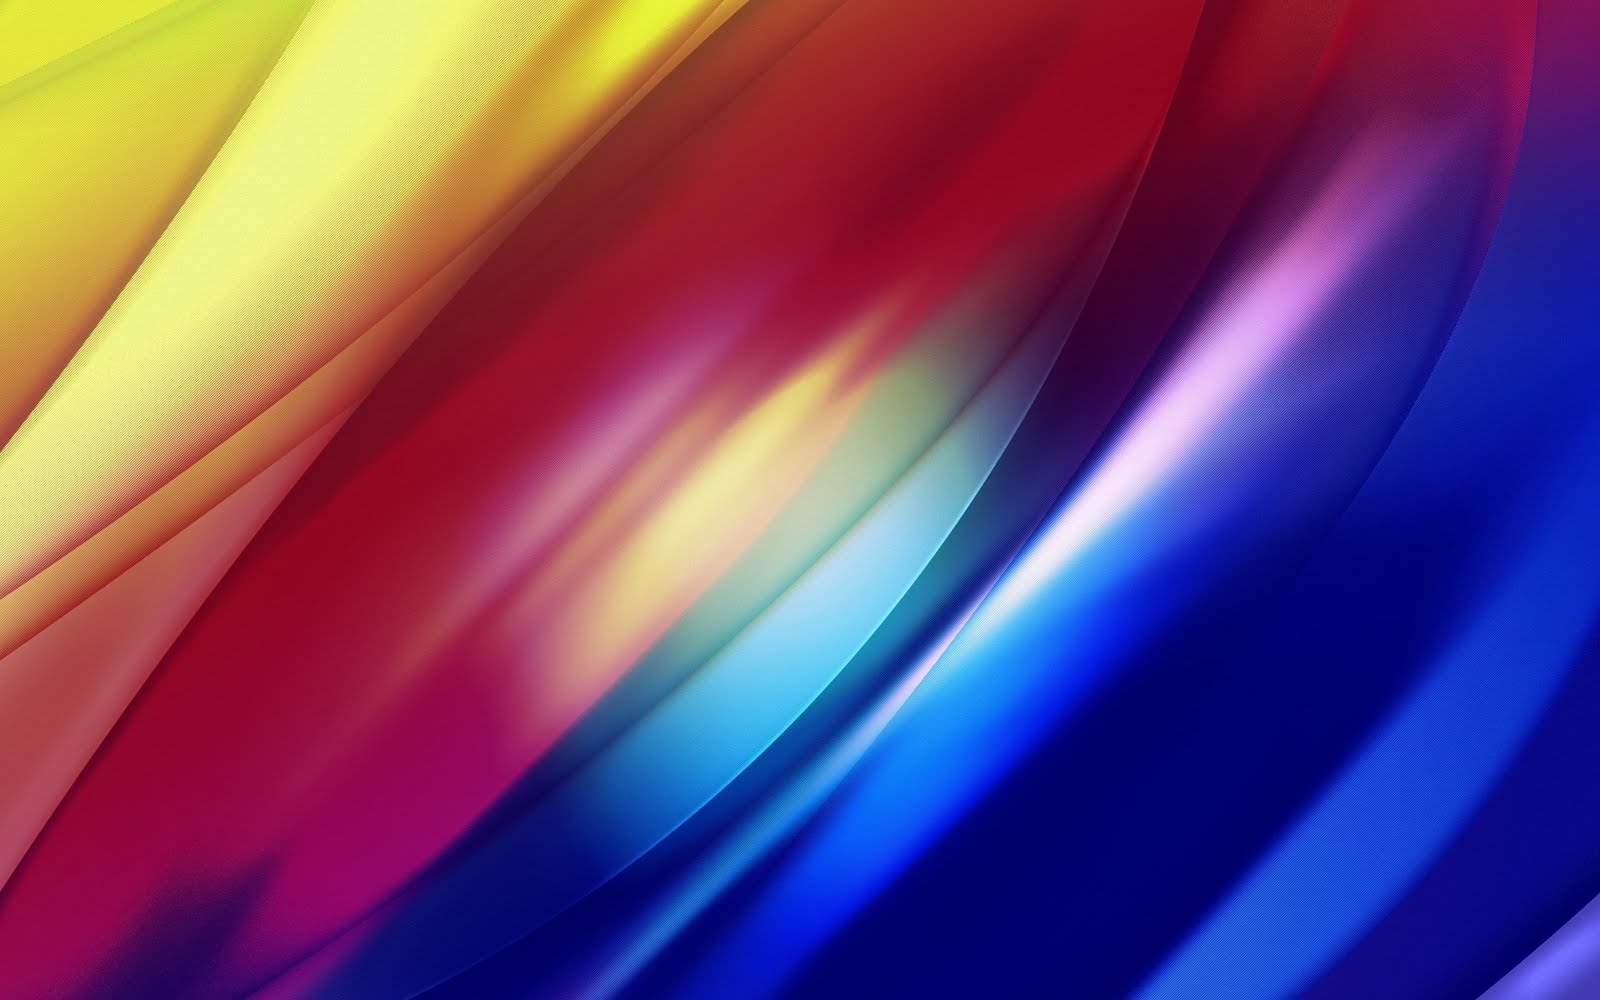 http://3.bp.blogspot.com/-1uaD1xwgxEs/TfsGFofjA2I/AAAAAAAACC4/AVn4MGd1Erc/s1600/Abstract+Aura+Colors+HD+Wallpaper.jpg